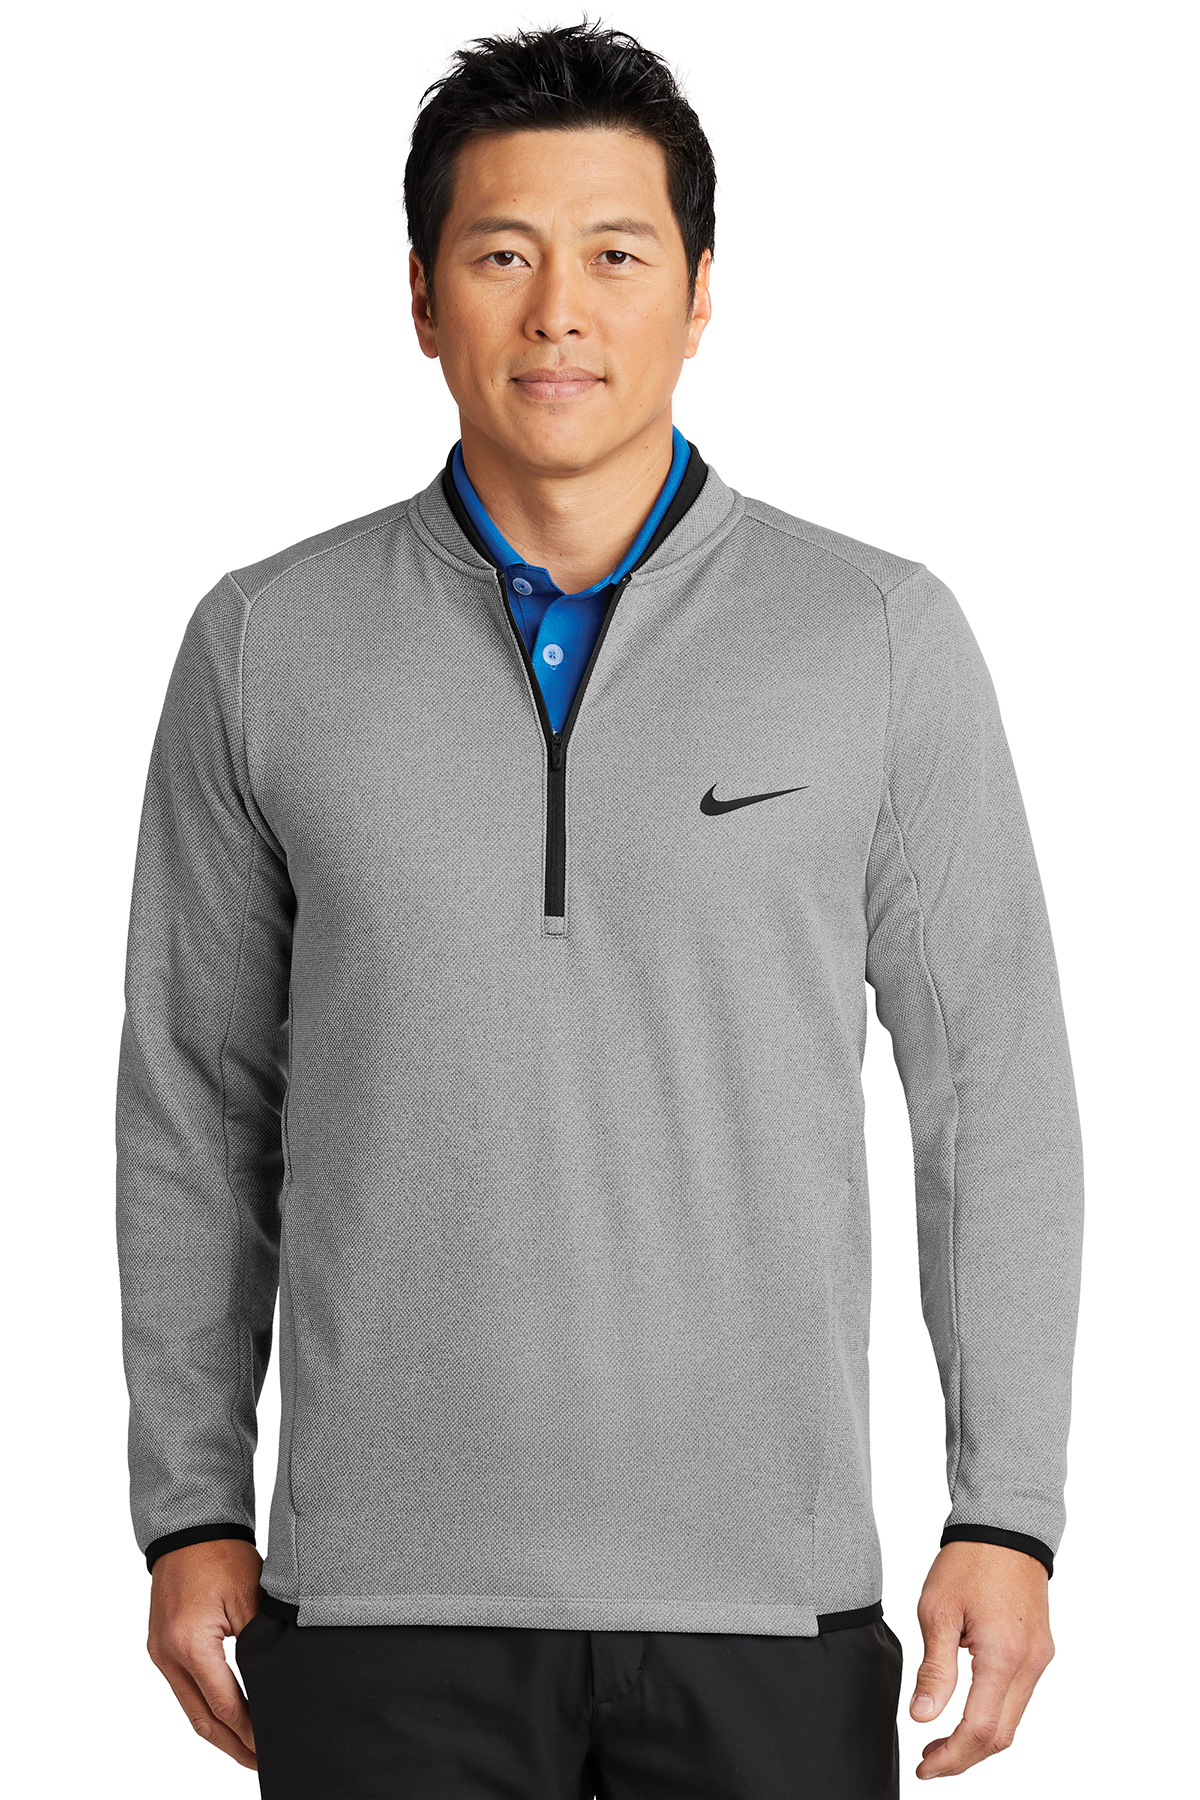 nike fleece 1/4 zip pullover women's